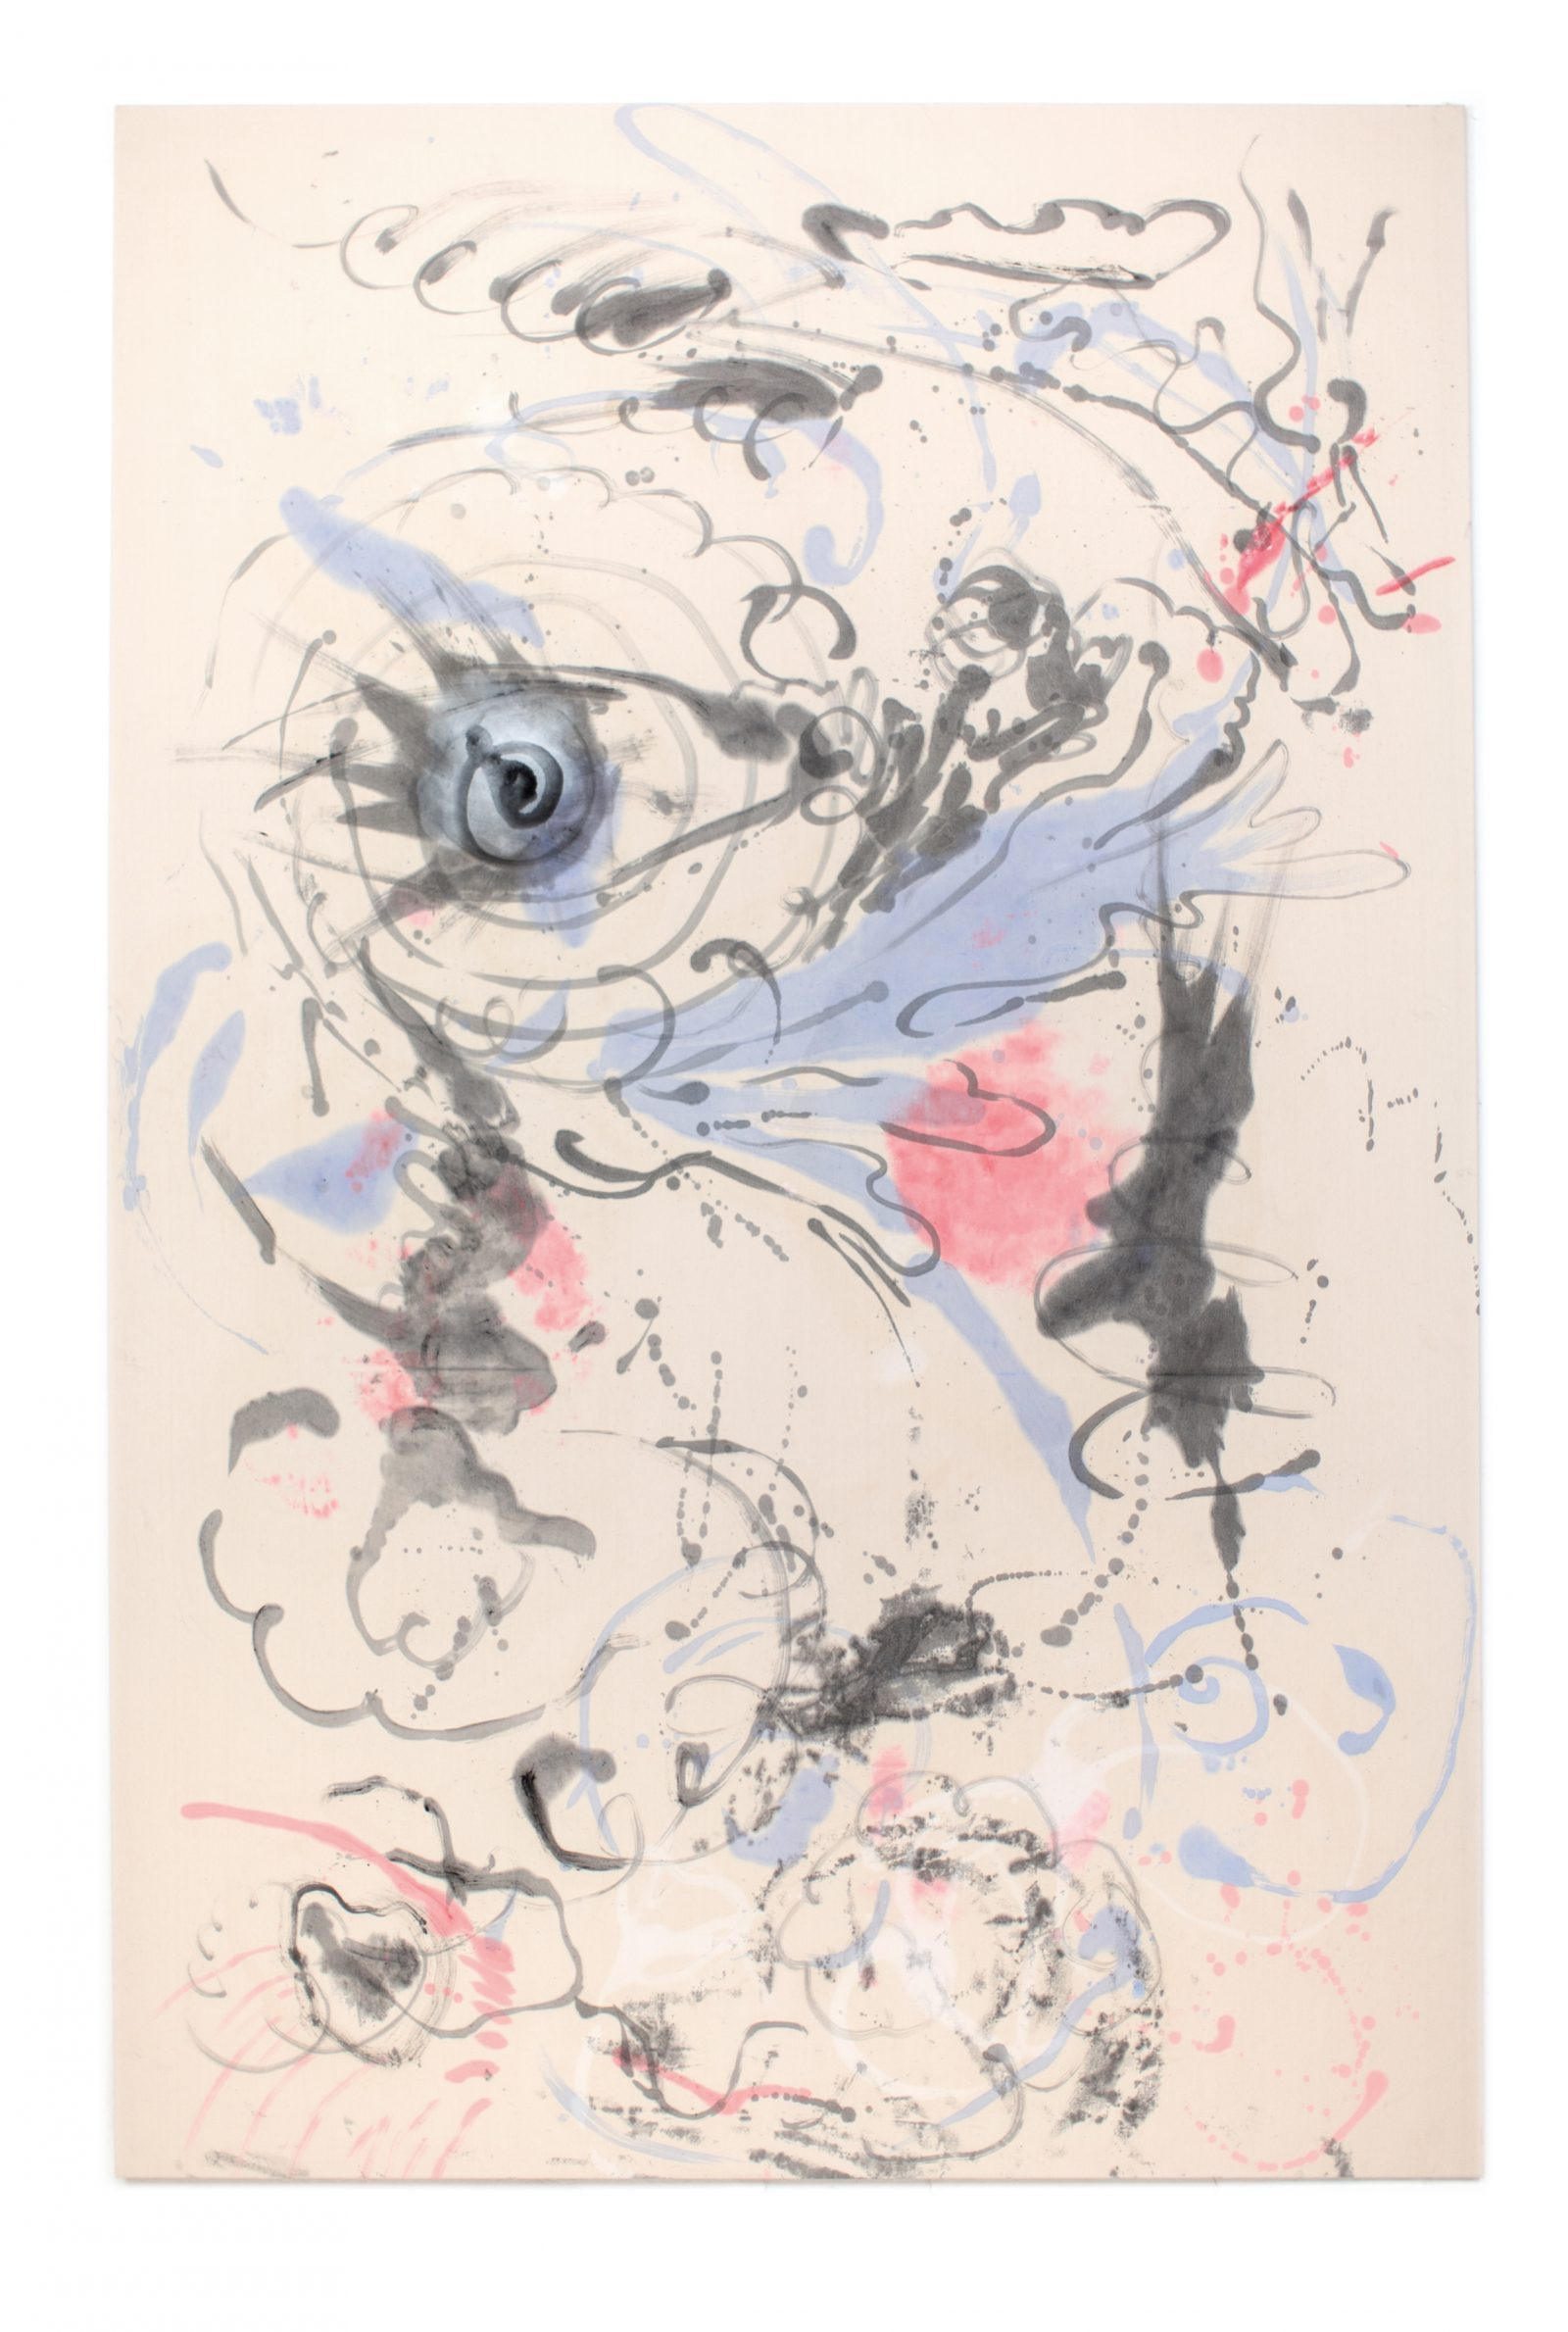 Gunna-Schmidt_A-Joyous-Flow-of-Endless-Becoming-Enigma-No1_-240-x-155-cm_-oil-on-cotton-duck_img-Matthias-Kindler_bA35R4673-e1482699439645